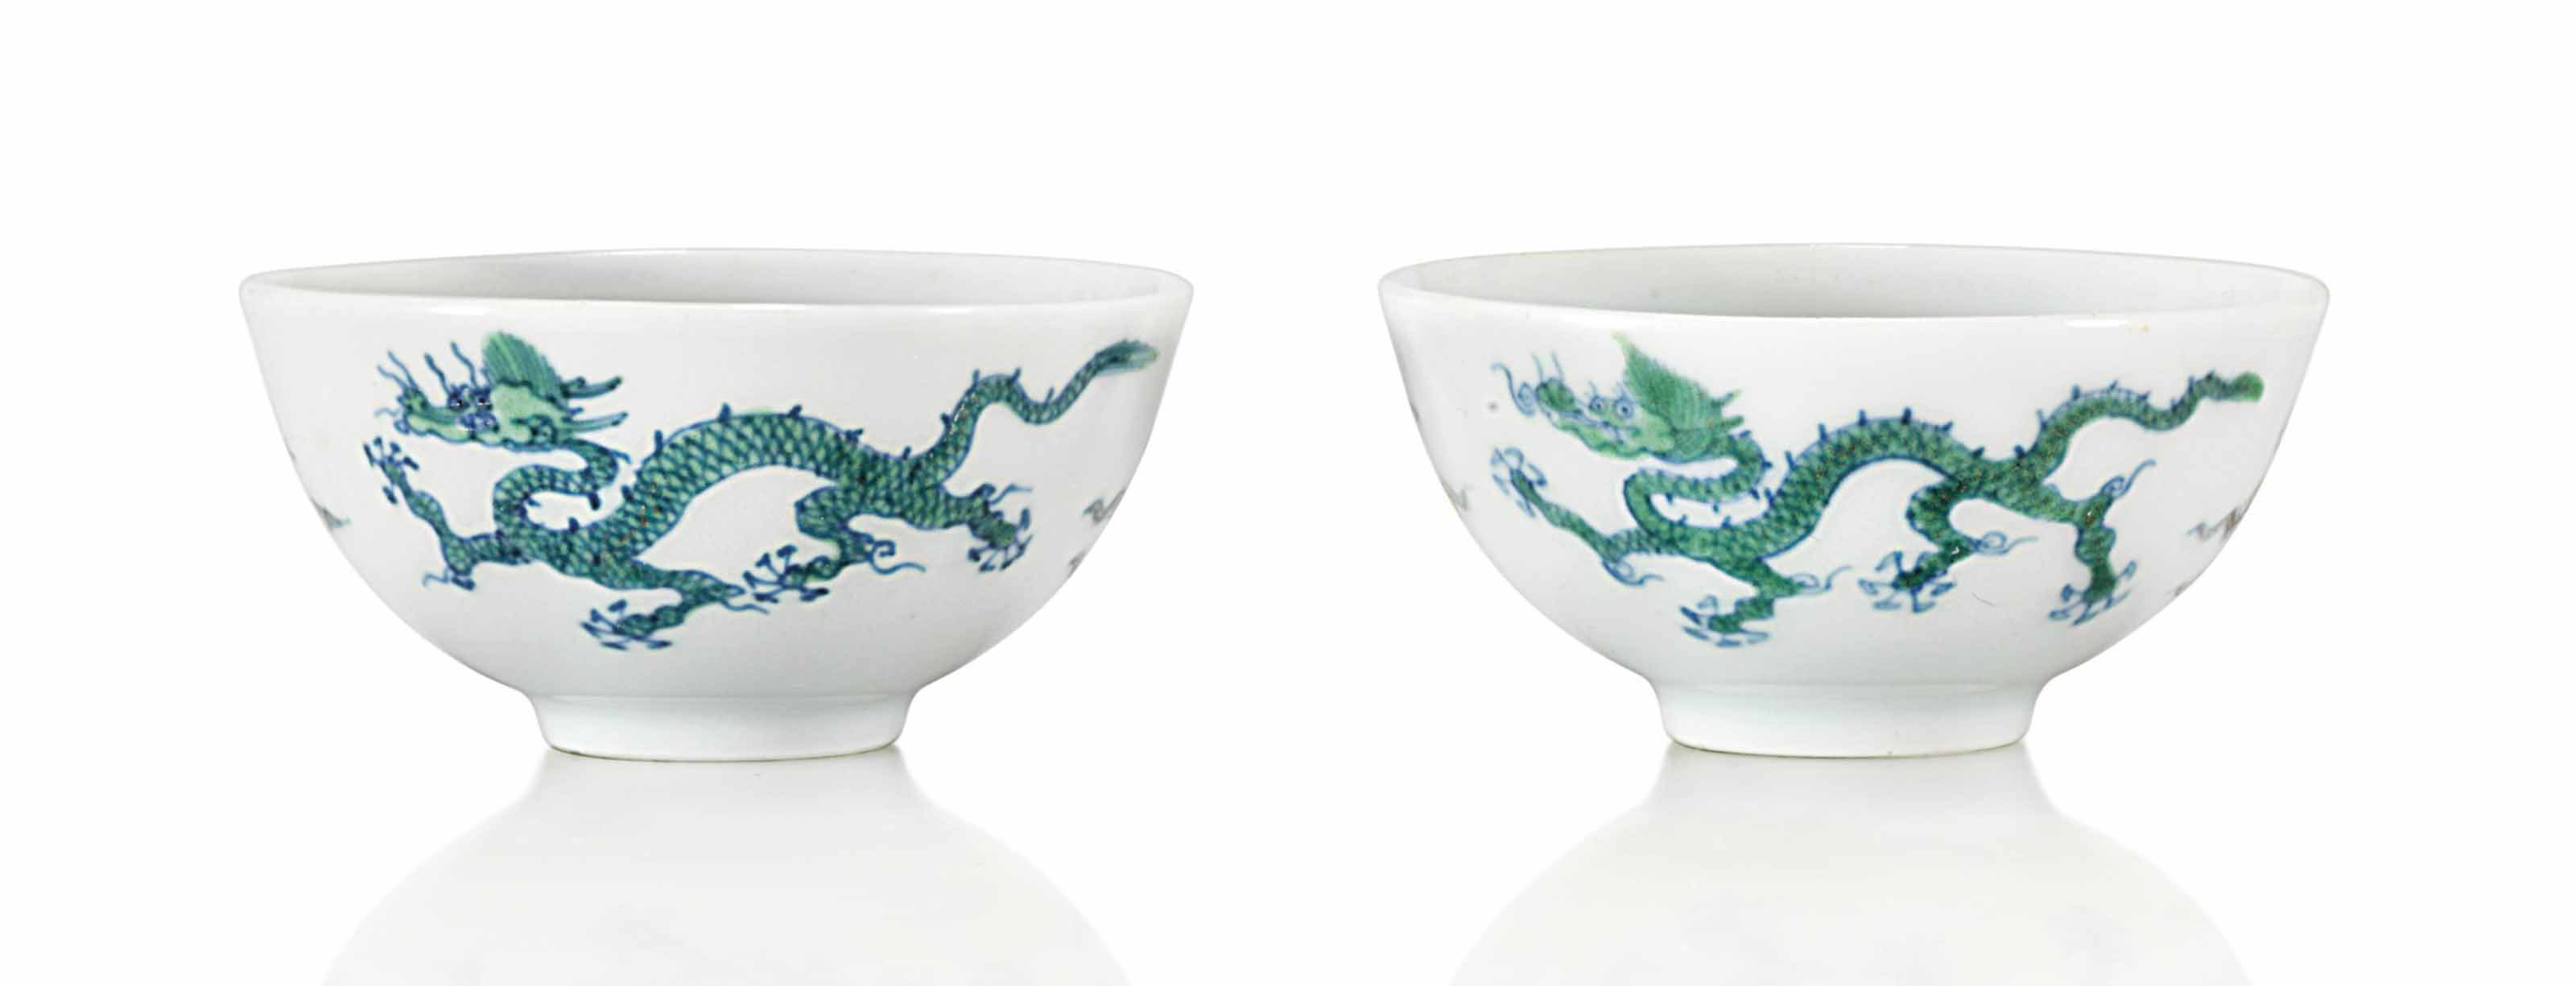 A PAIR OF DOUCAI 'DRAGON' CUPS